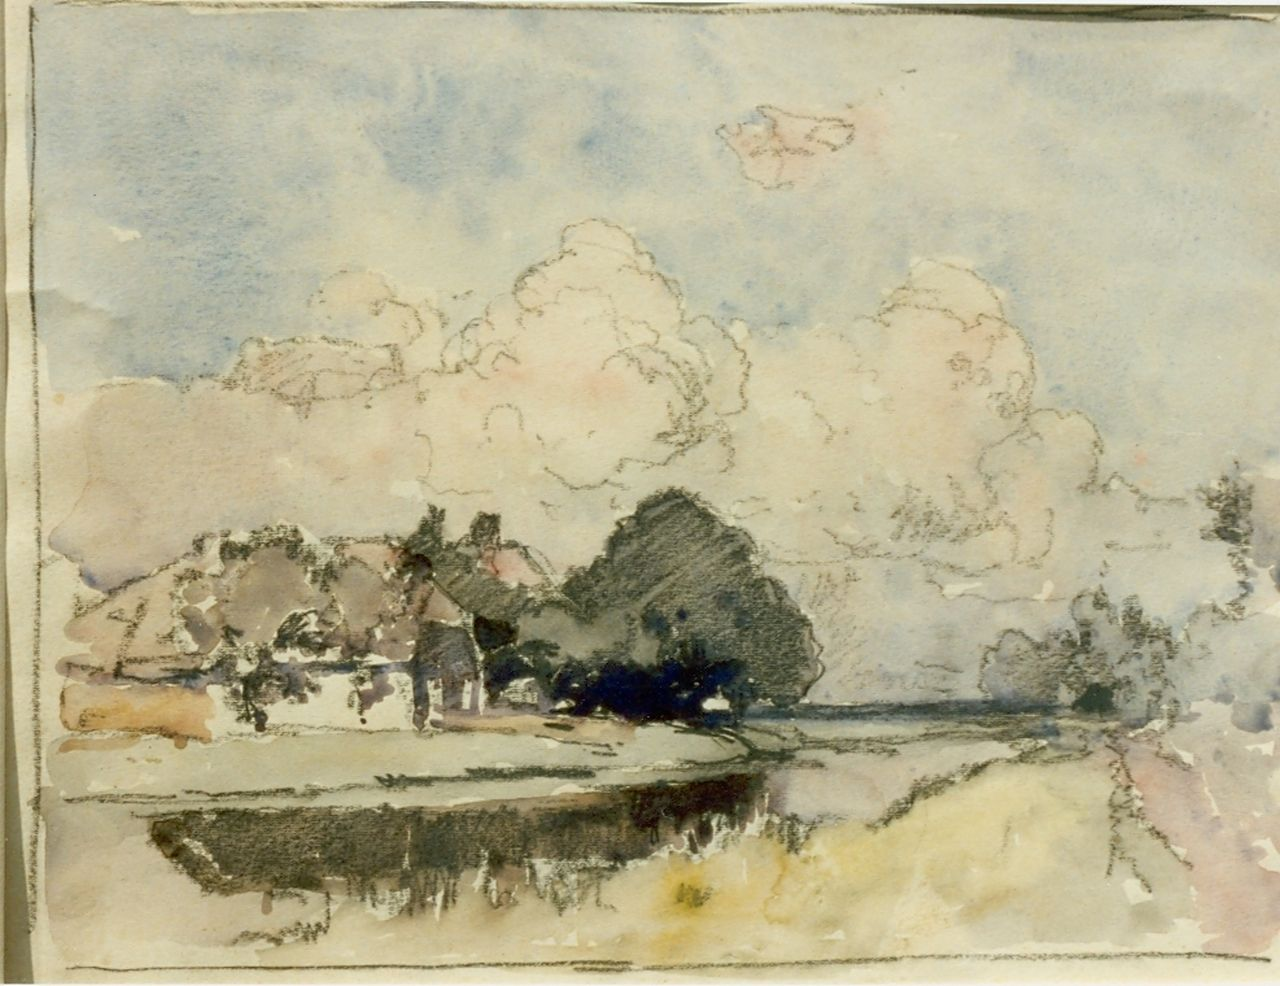 Vreedenburgh C.  | Cornelis Vreedenburgh, A farm along a canal, watercolour on paper 21.0 x 27.5 cm